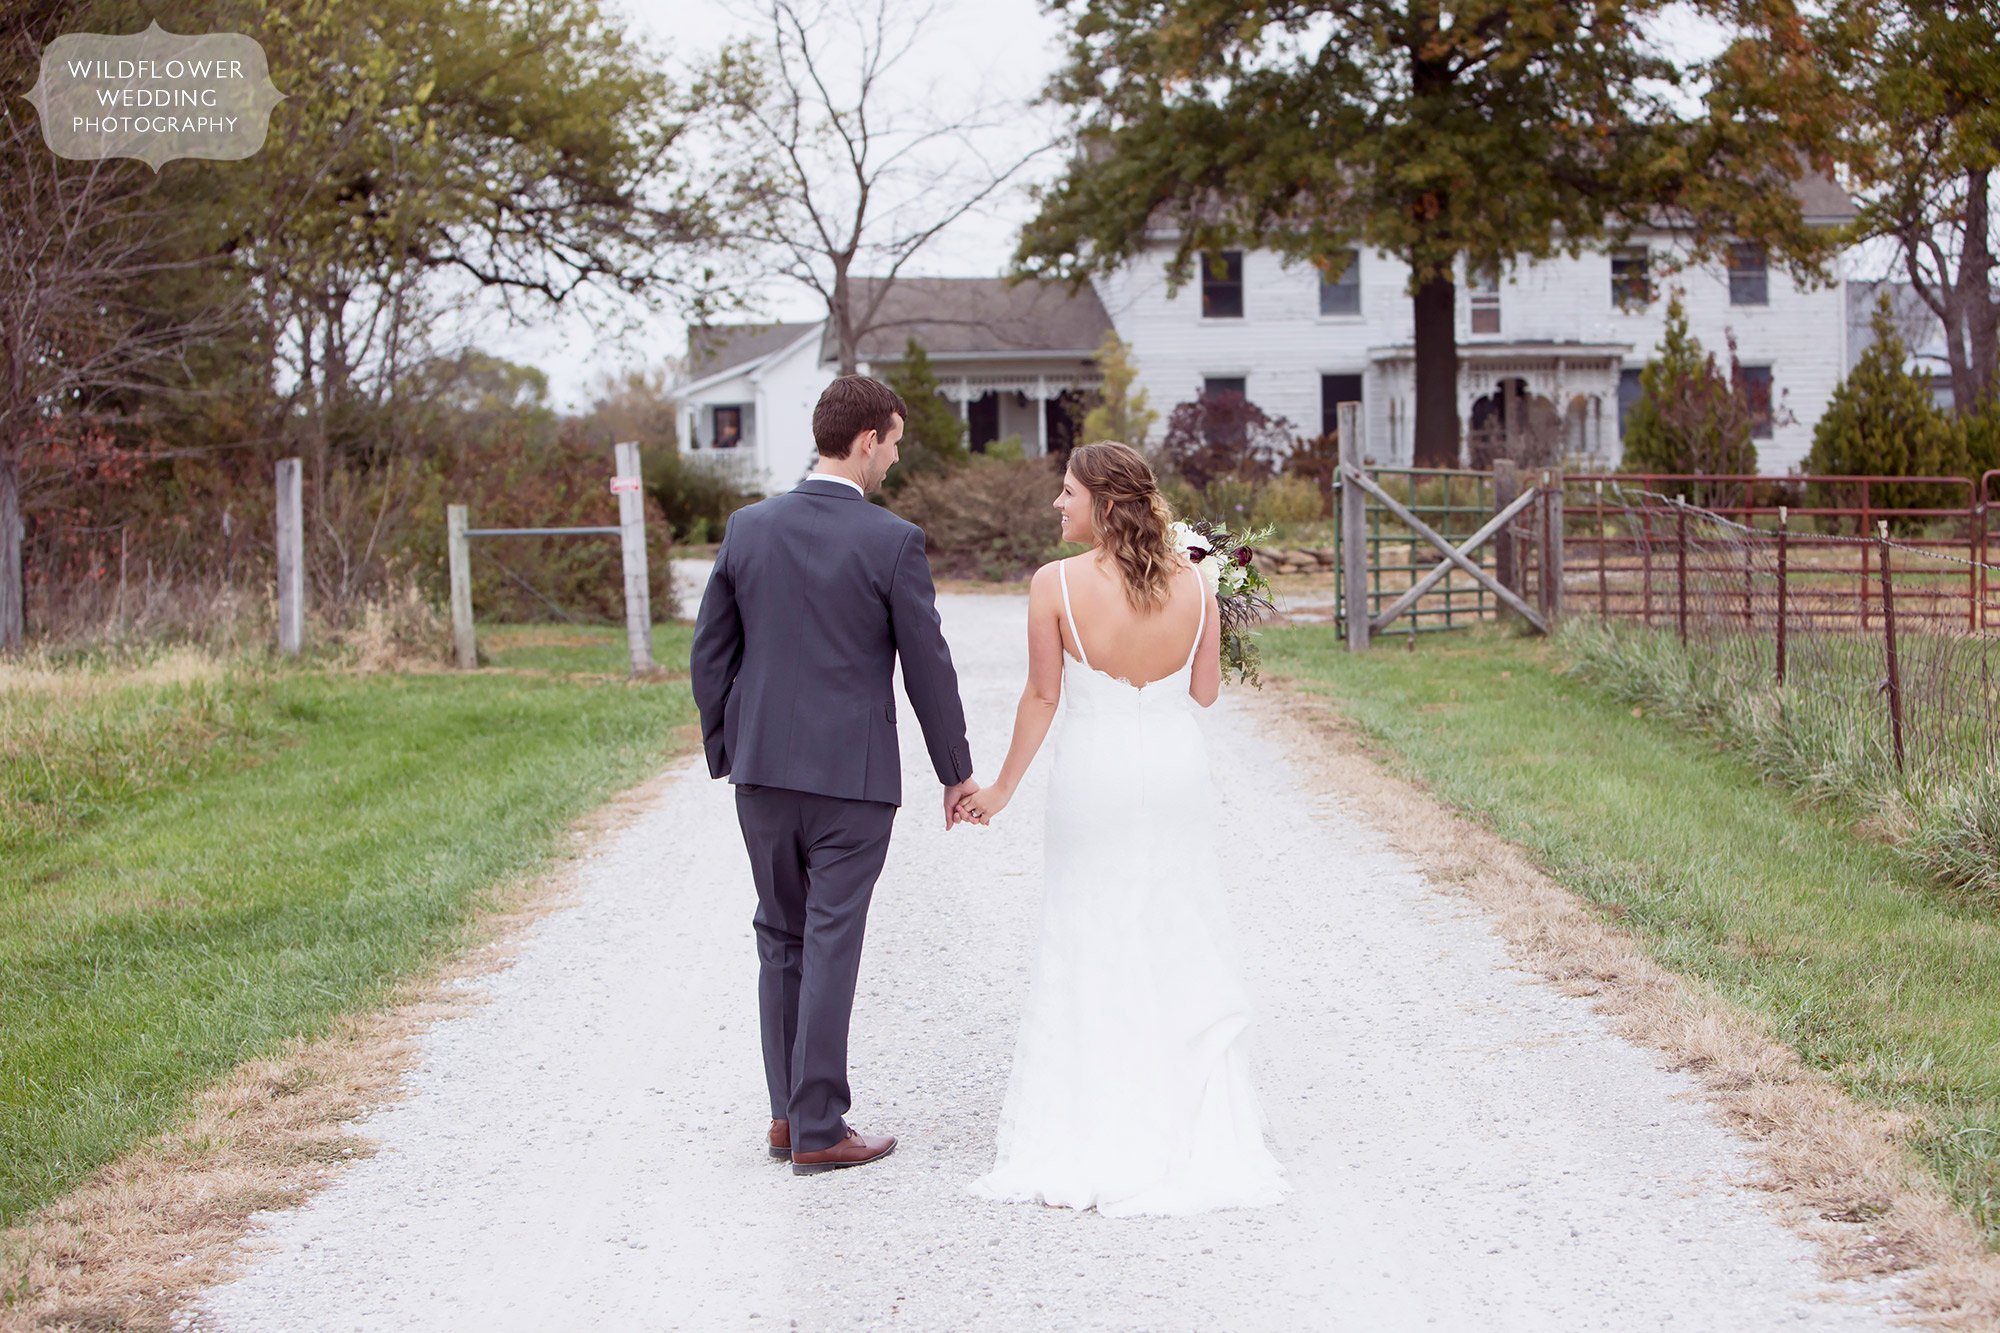 The bride and groom hold hands while walking down the gravel road to the Blue Bell Farm wedding venue in mid-MO.